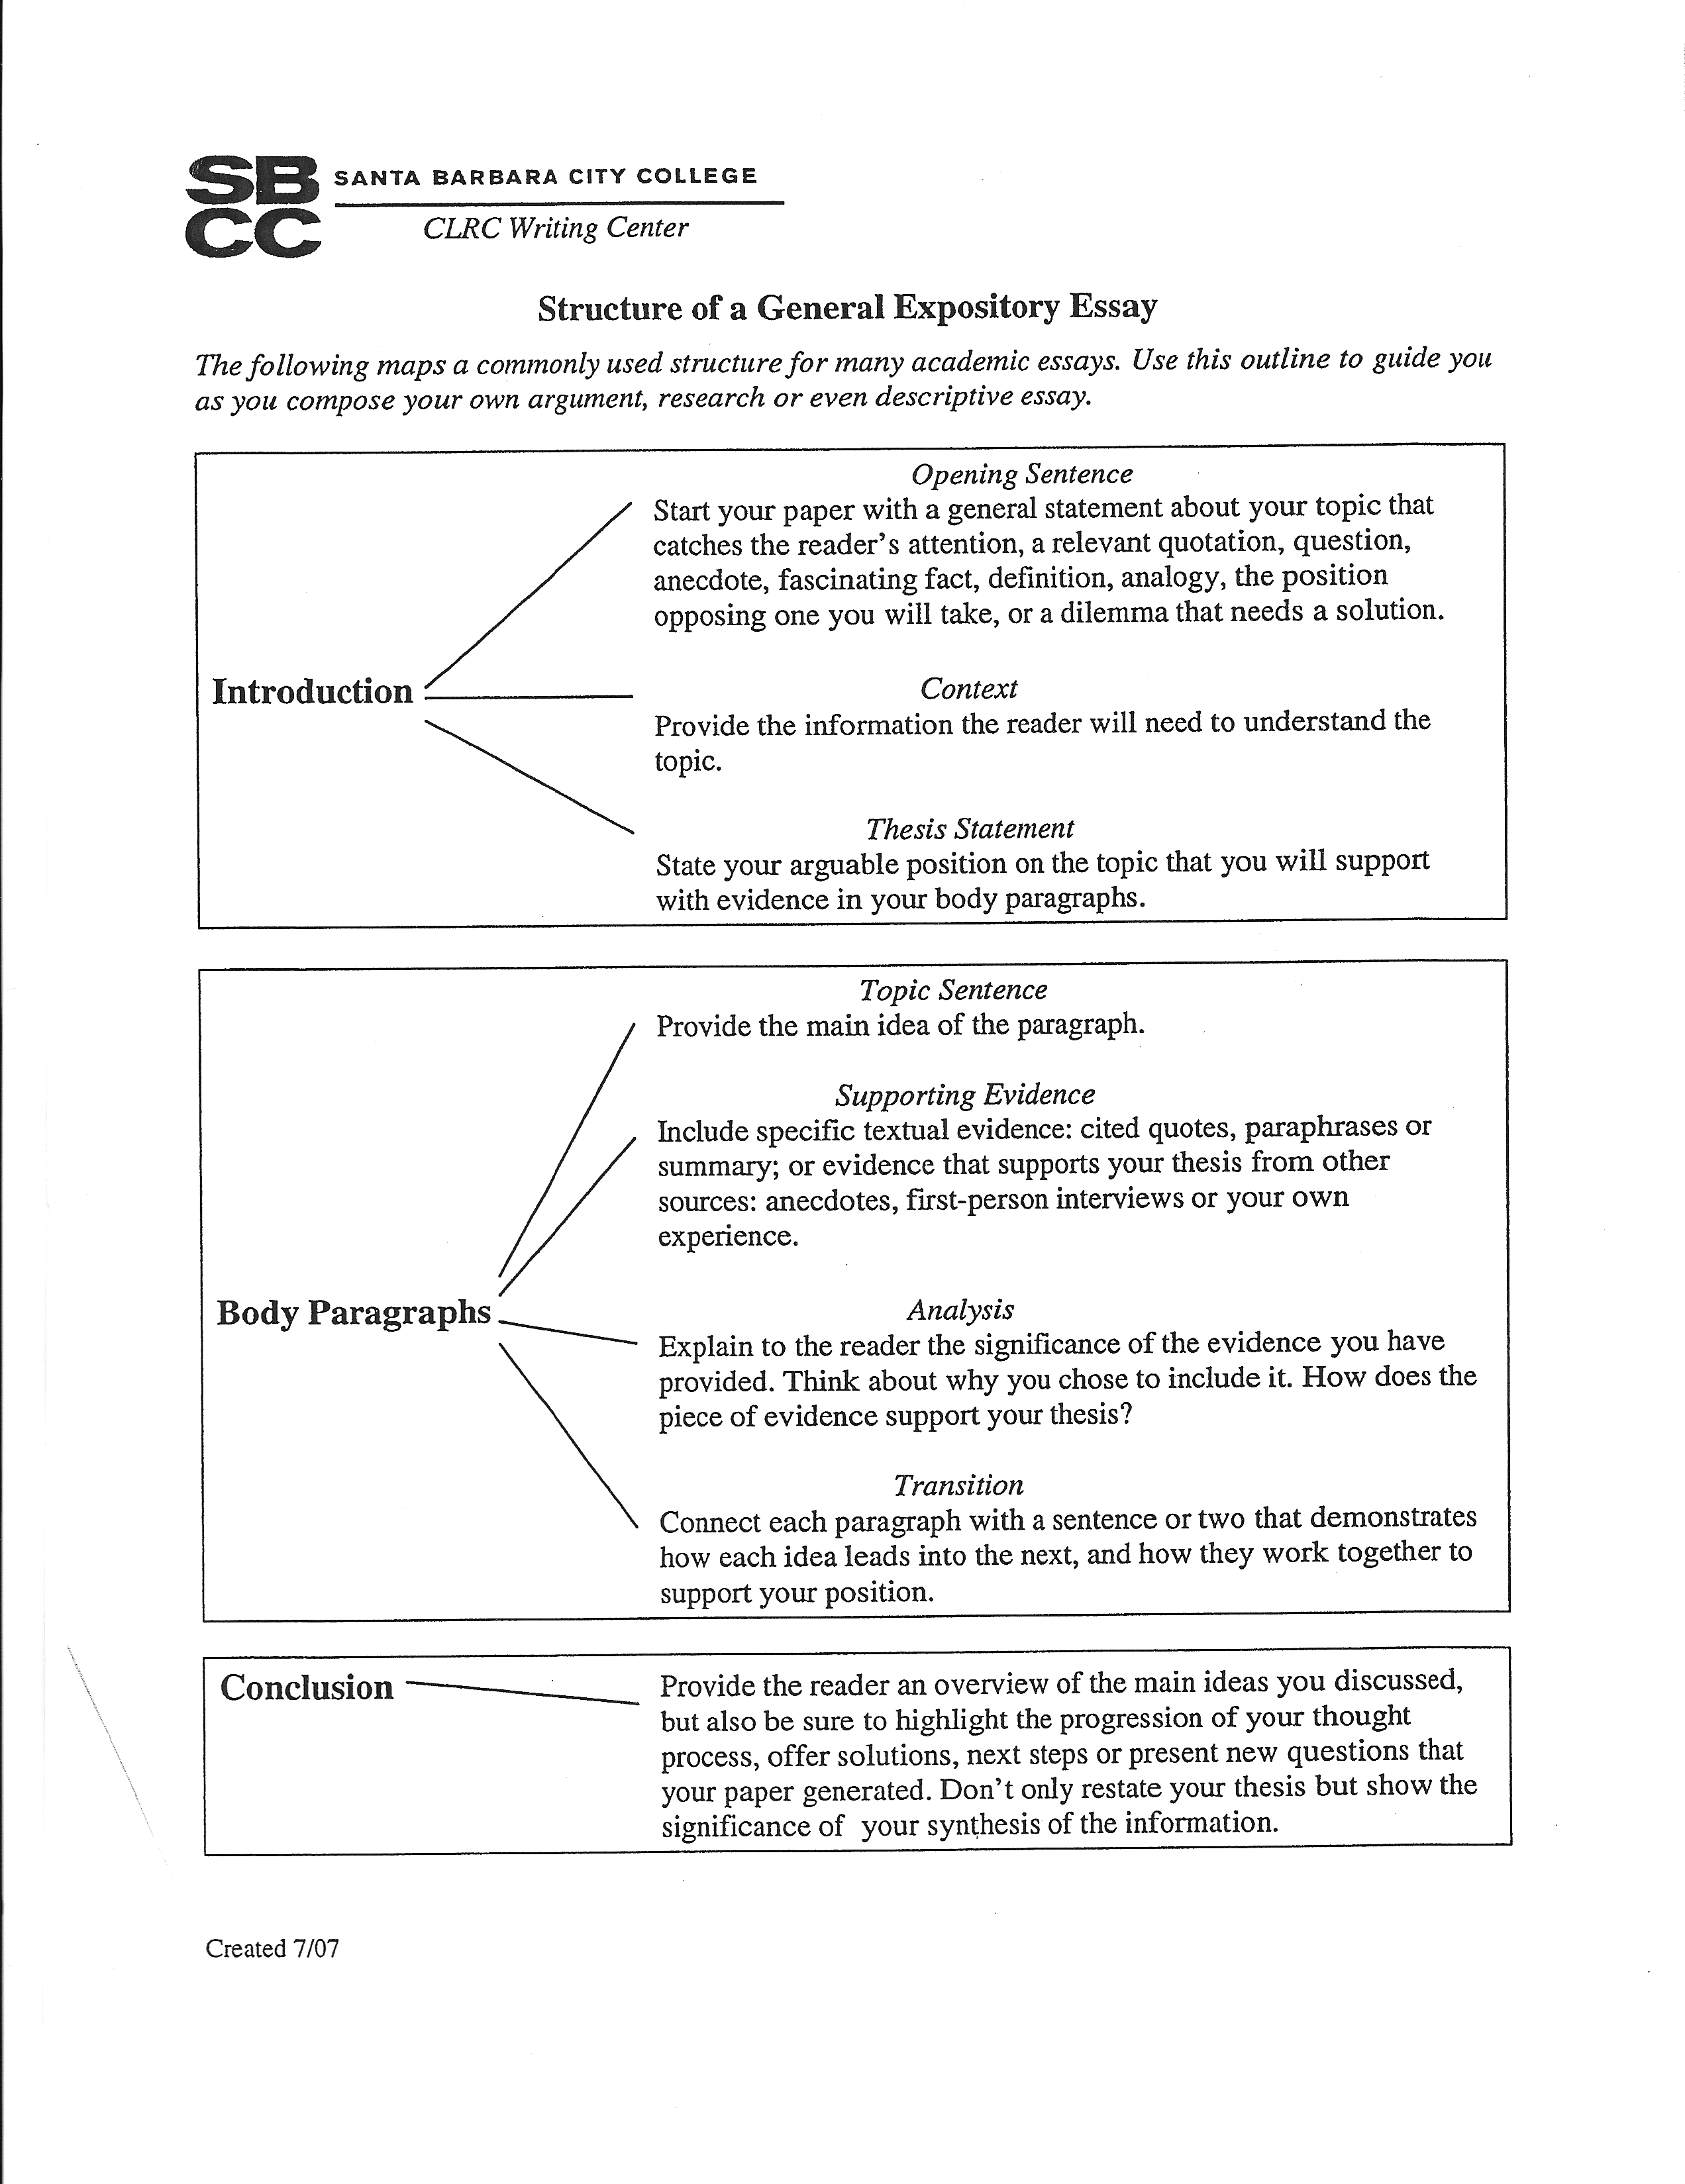 005 Informational Essays Essay Writing Examples For Kids Ideas About An Informative Making Sacrifices Br Quizlet Prewriting Activity Brainly Example How To Sensational Write 4th Grade Thesis Full